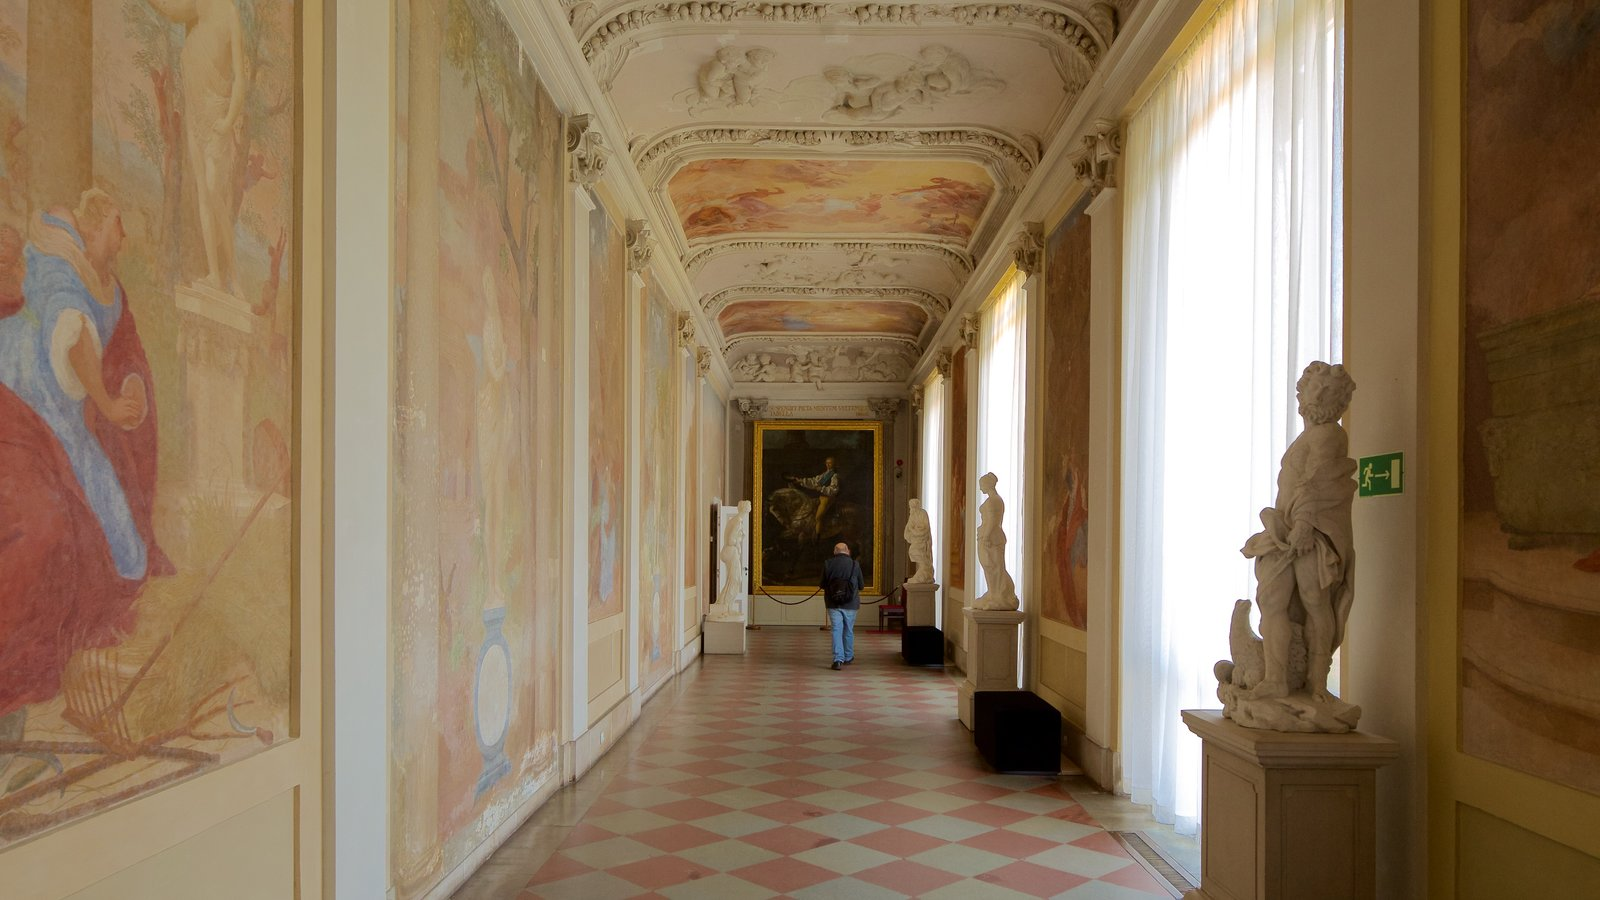 Wilanow Palace which includes art, interior views and heritage elements